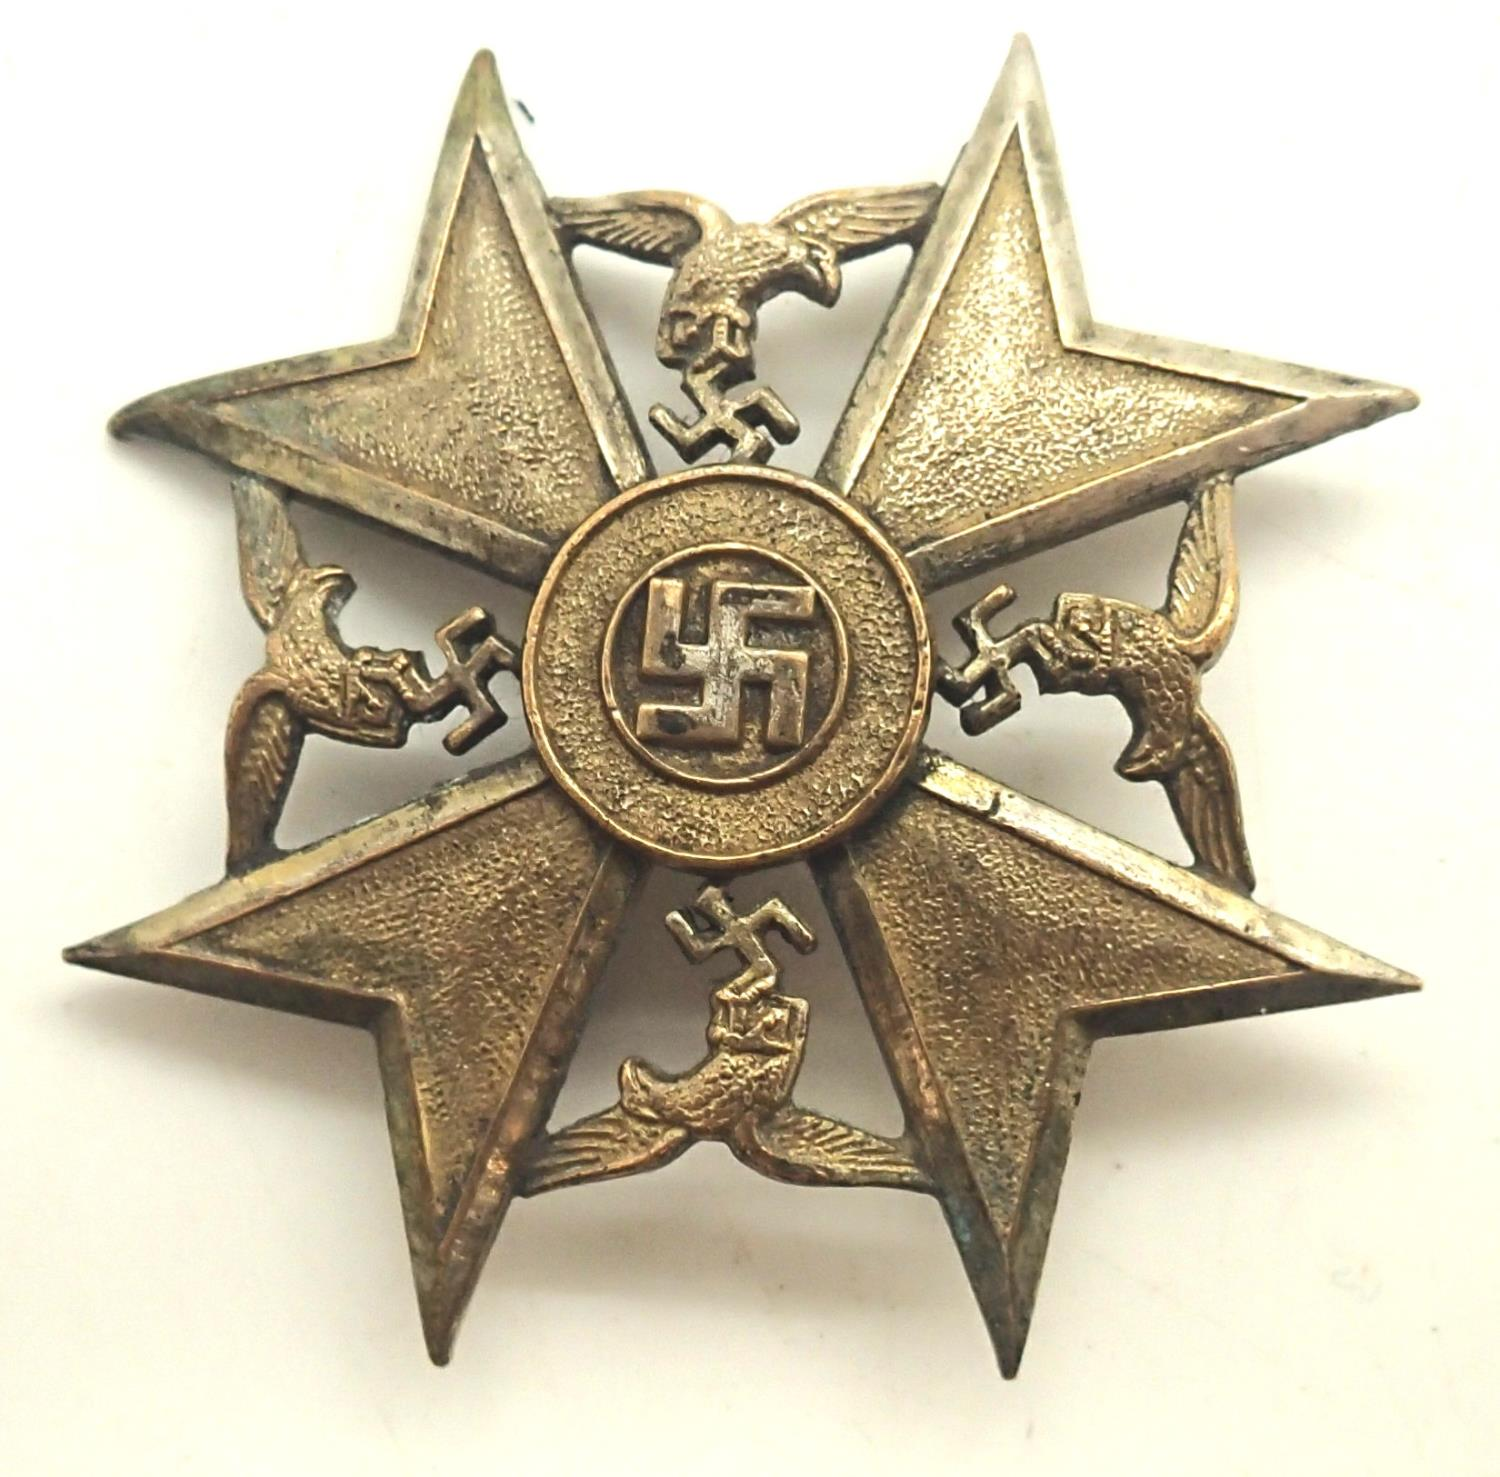 1960s copy German Condor Legion Spanish cross 1st class, museum quality. Not available for in-